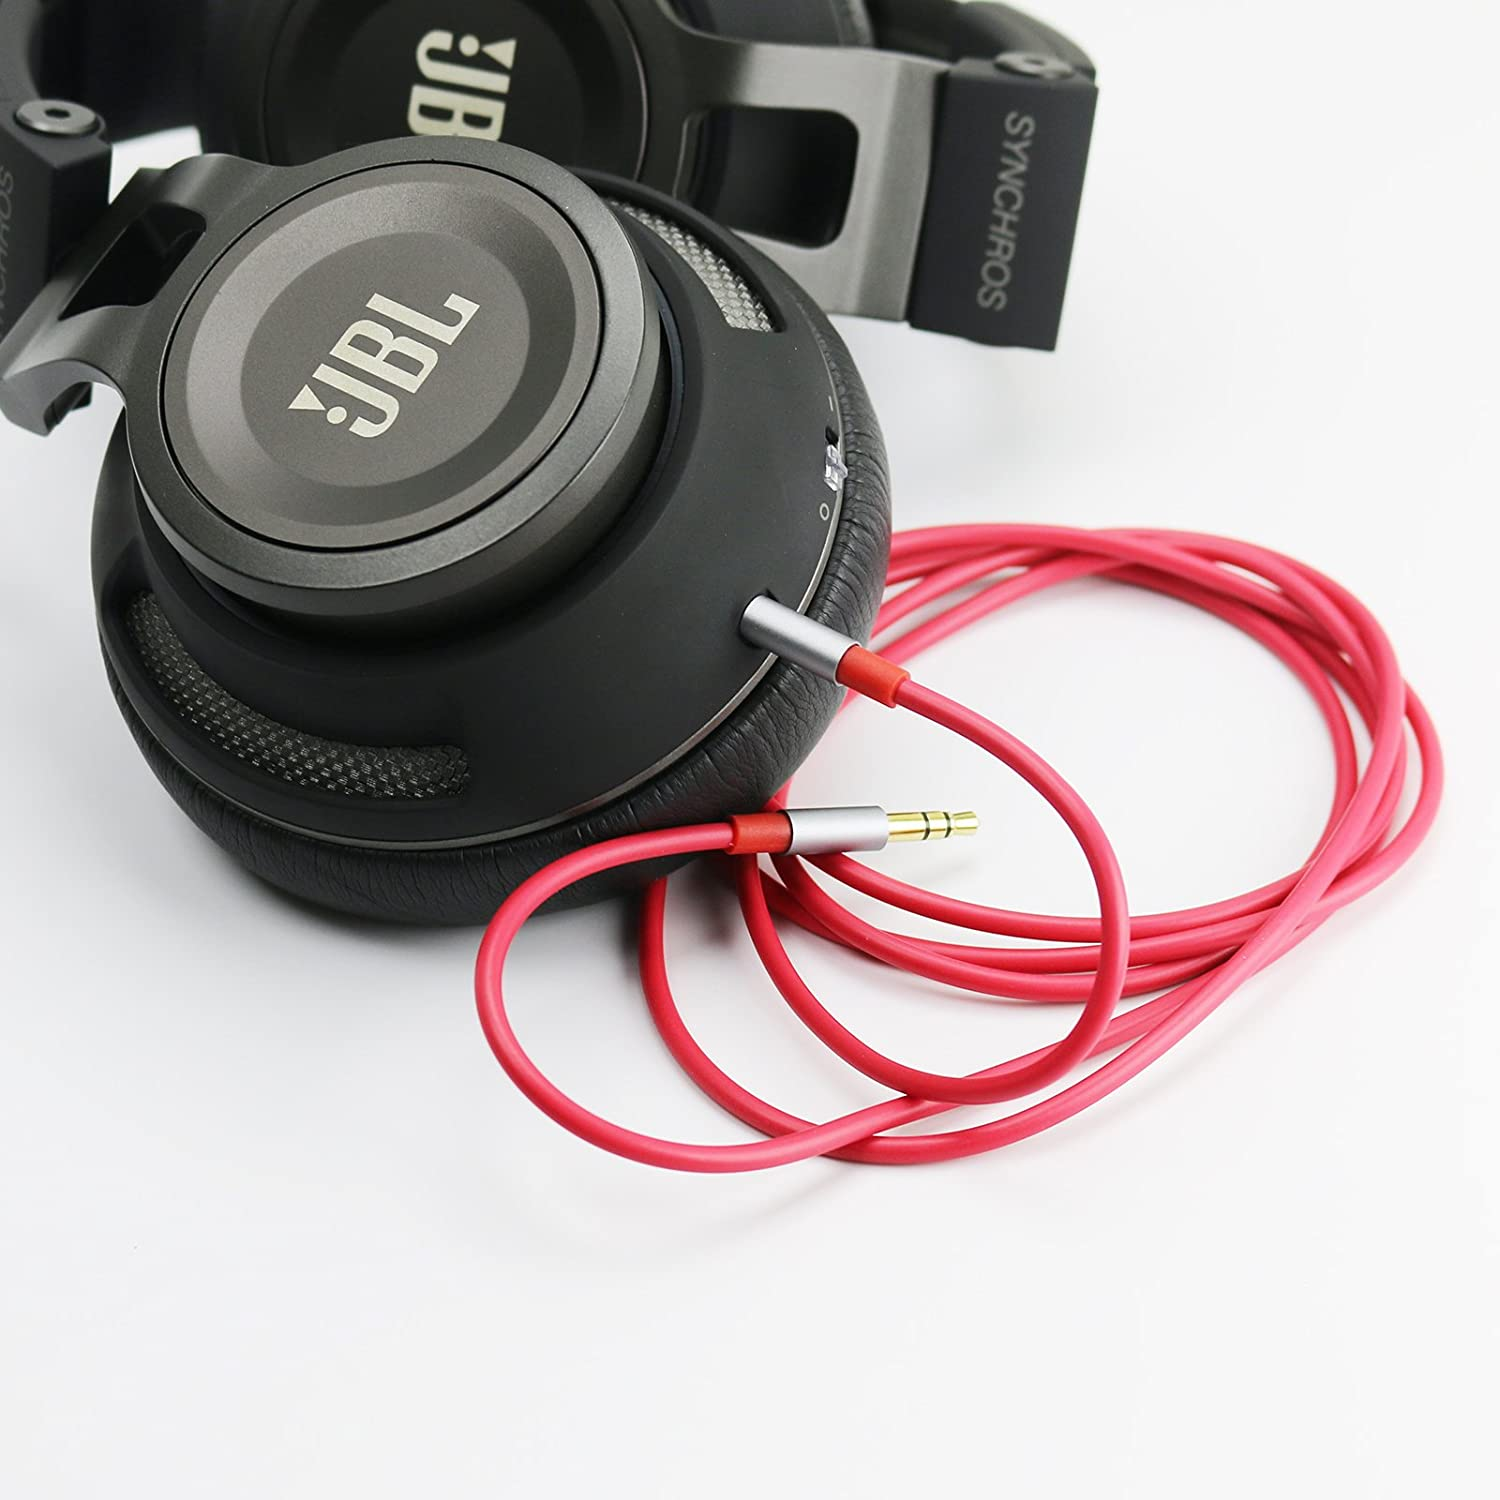 S700 J56BT S300a E40BT E50BT,S400BT Headphones Red 3meter//9.9ft S300I ABLET Audio Cable for JBL Synchros S700 S500 S400BT E30 E40 S300